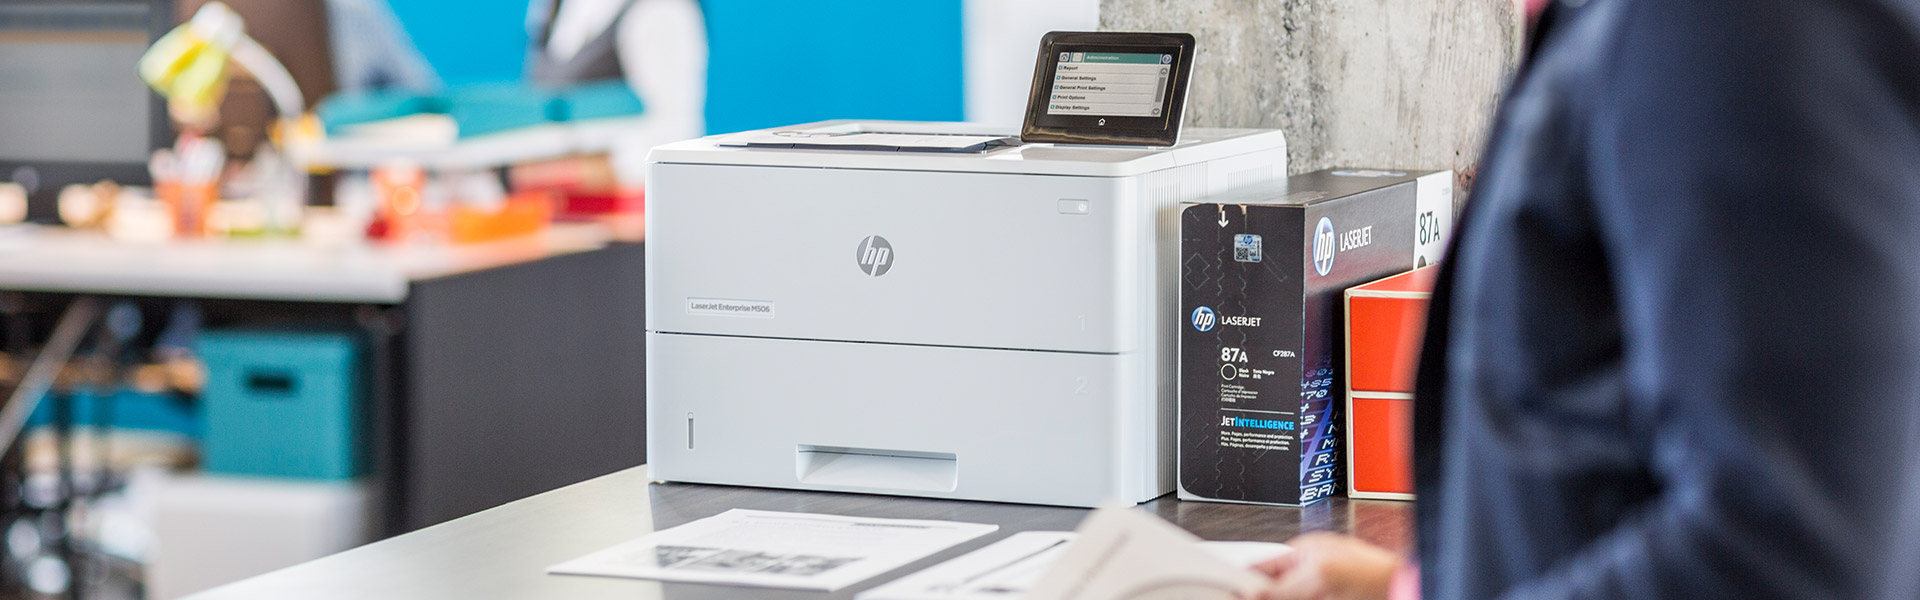 hp-laser-jet-colva-managed-print